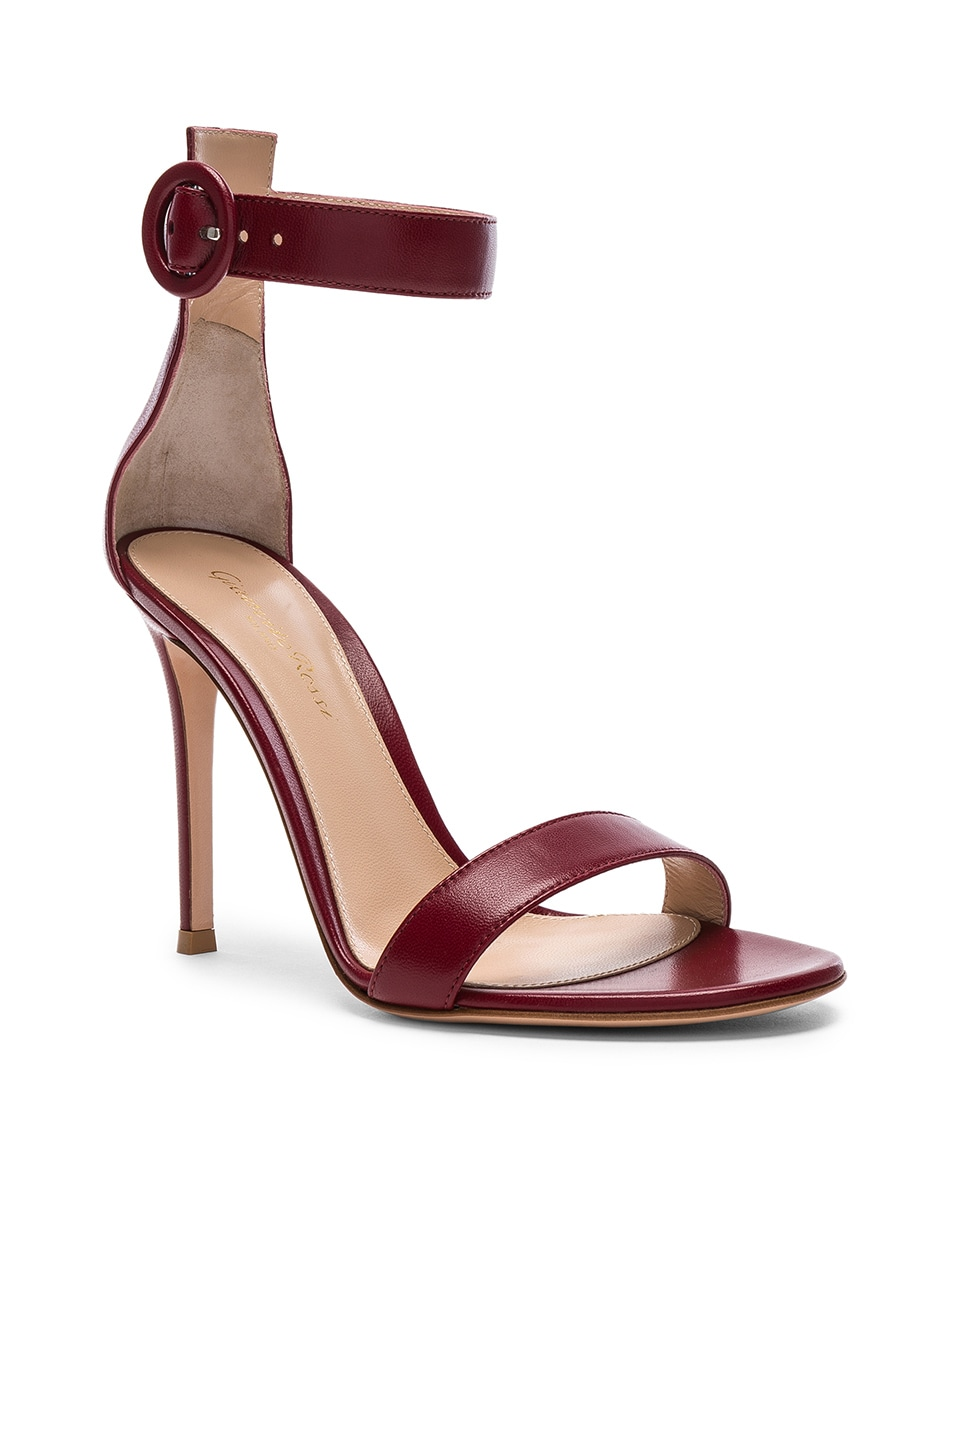 Image 2 of Gianvito Rossi for FWRD Leather Portofino Heels in Syrah